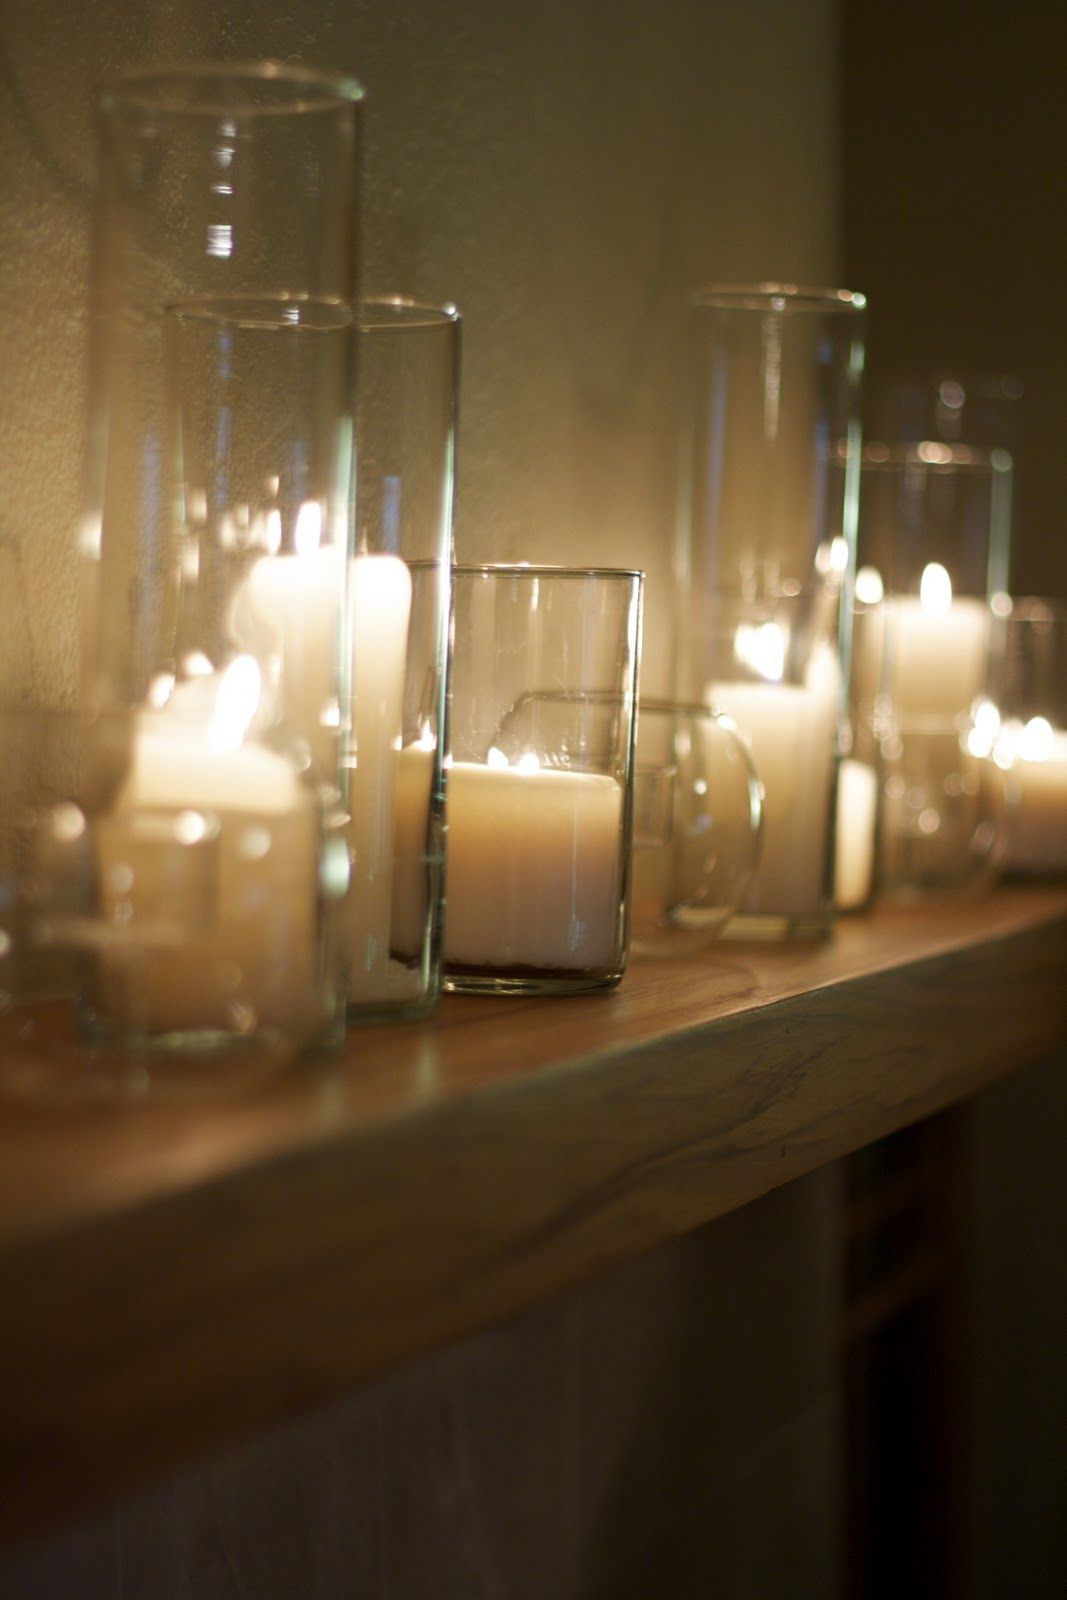 Pillar candles in cylinder vases and varied sizes of mercury glass pillar candles in cylinder vases and varied sizes of mercury glass candles will be placed on reviewsmspy